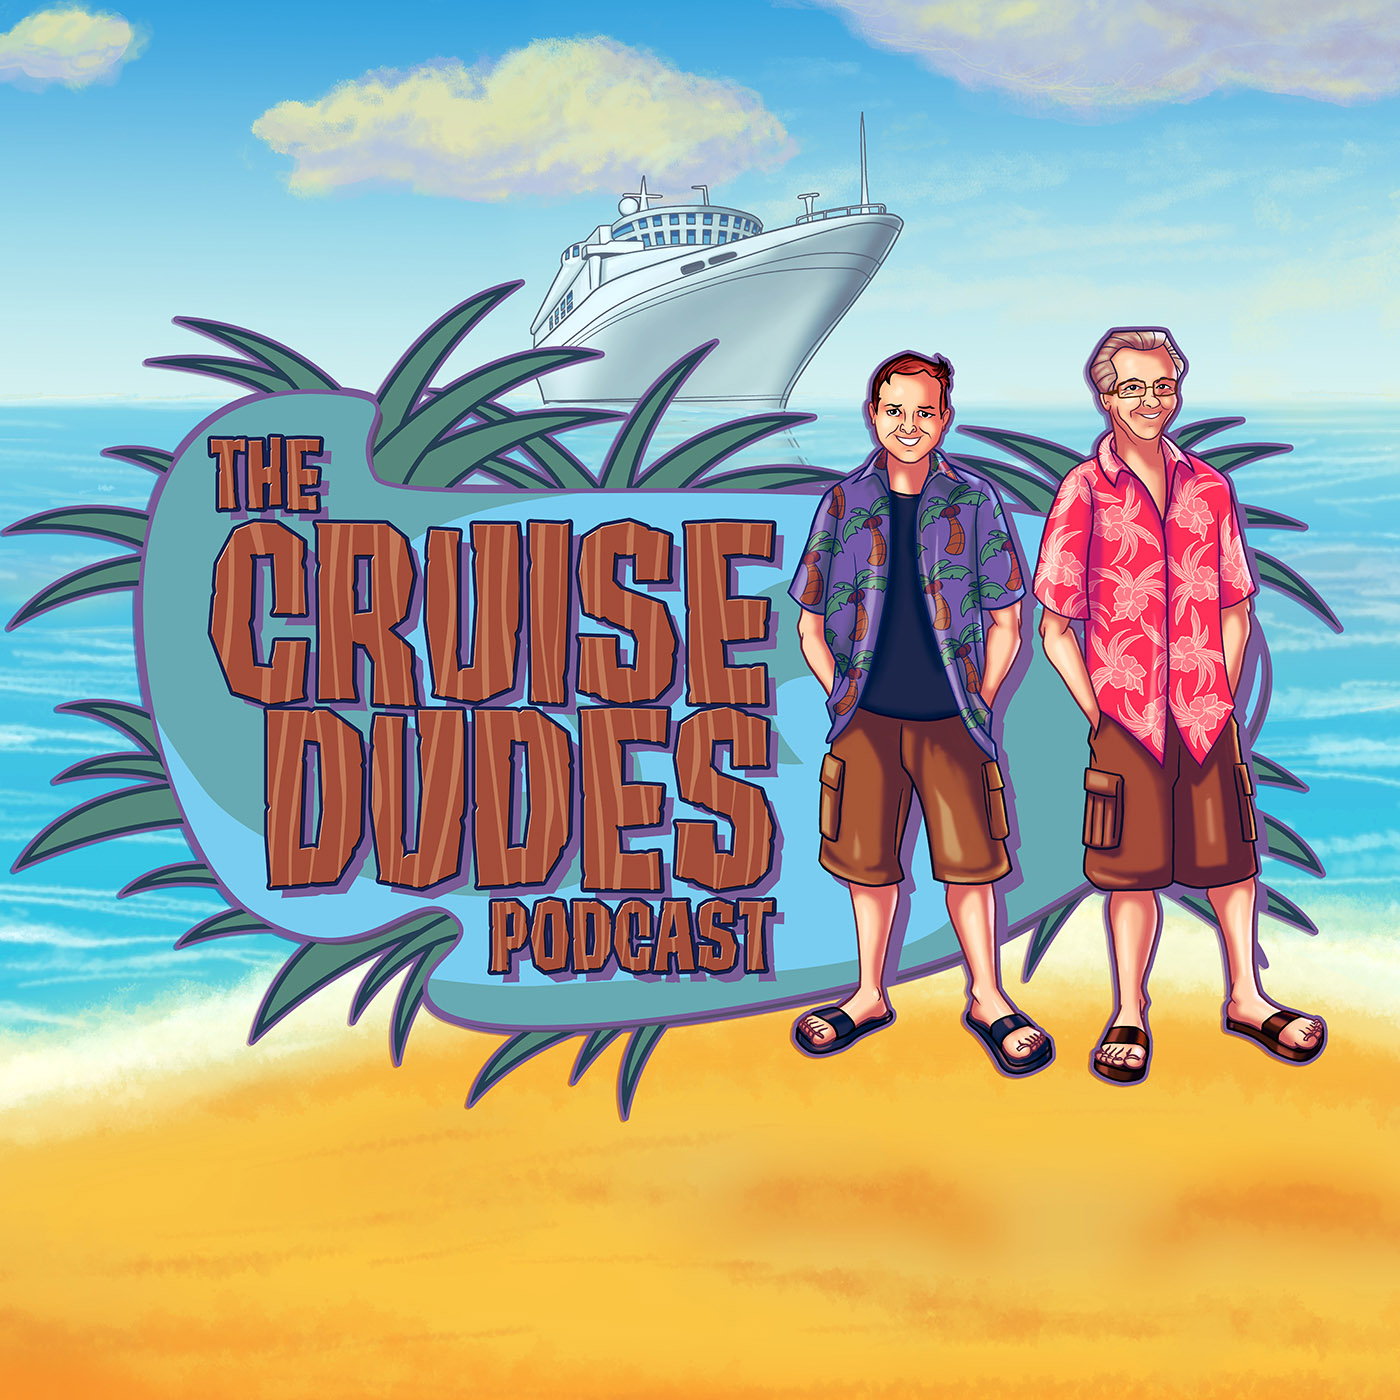 The Cruise Dudes Podcast show art